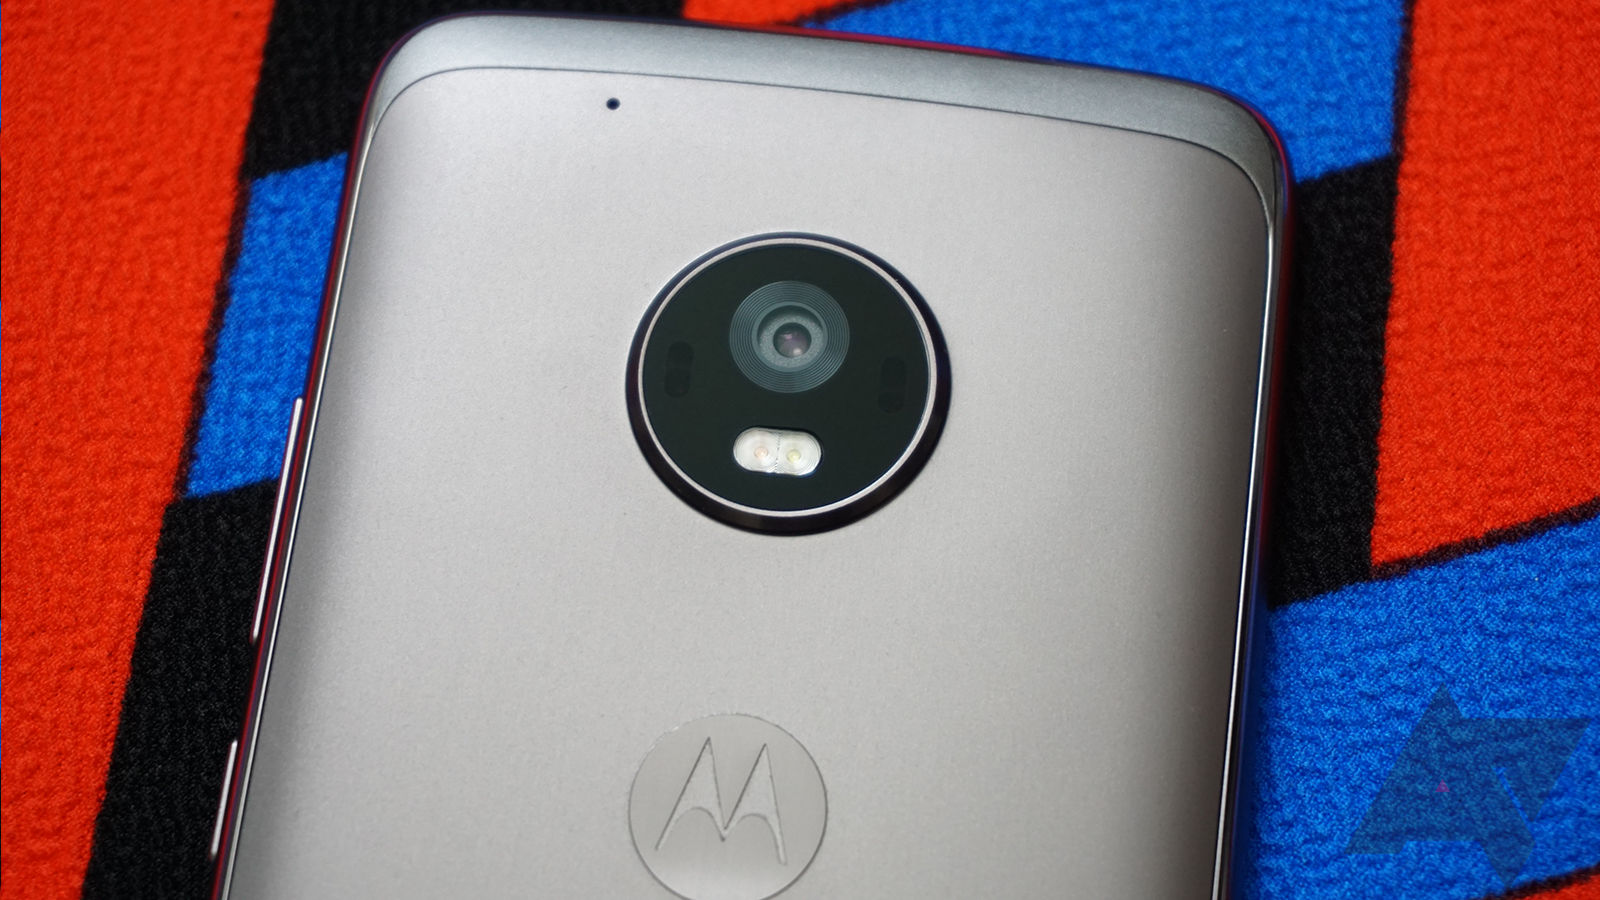 Moto G5 Plus review: Still the king of budget phones